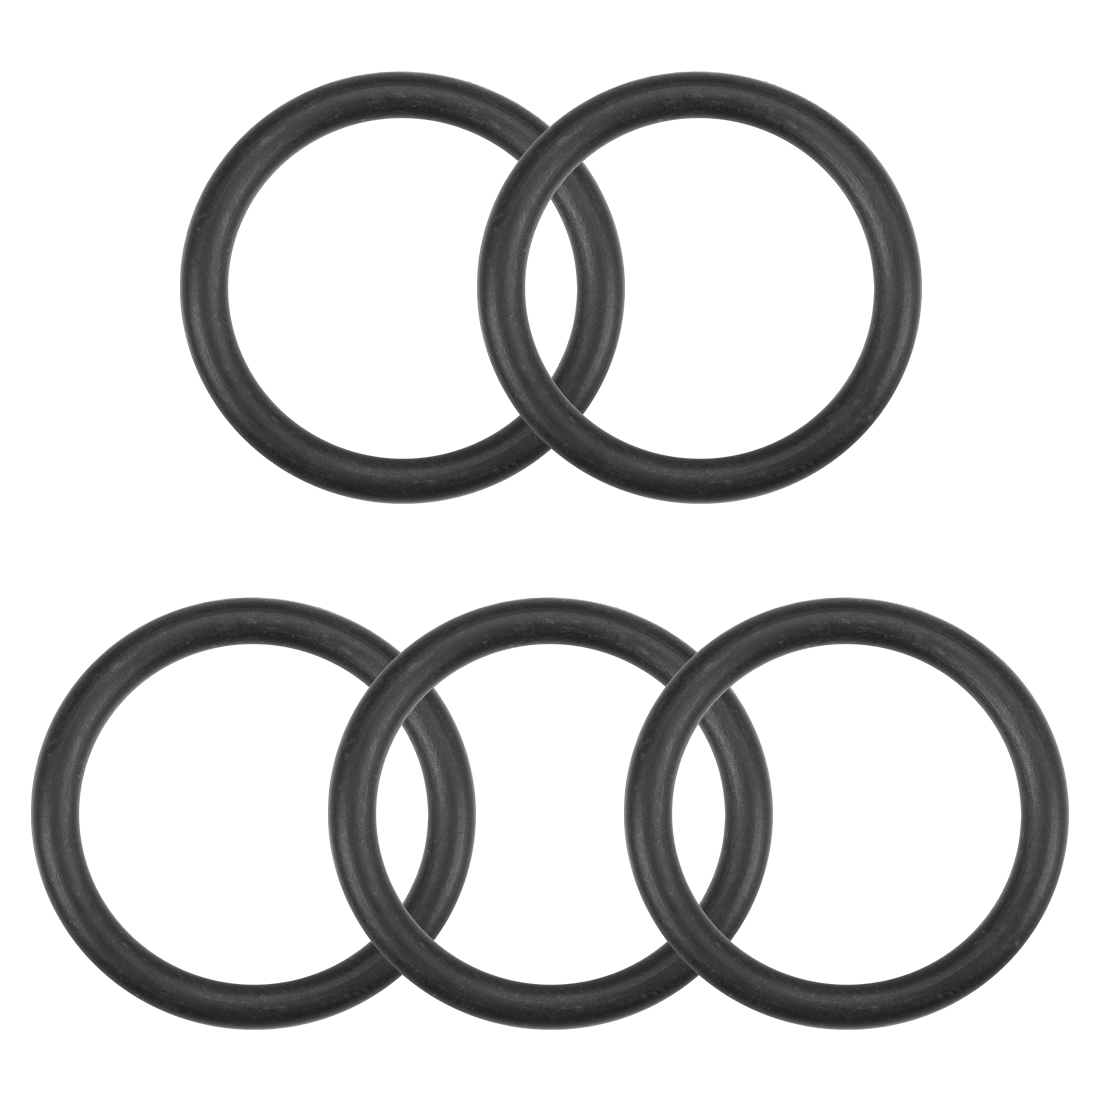 O-Rings Nitrile Rubber 17mm x 22.3mm x 2.65mm Round Seal Gasket 5 Pcs